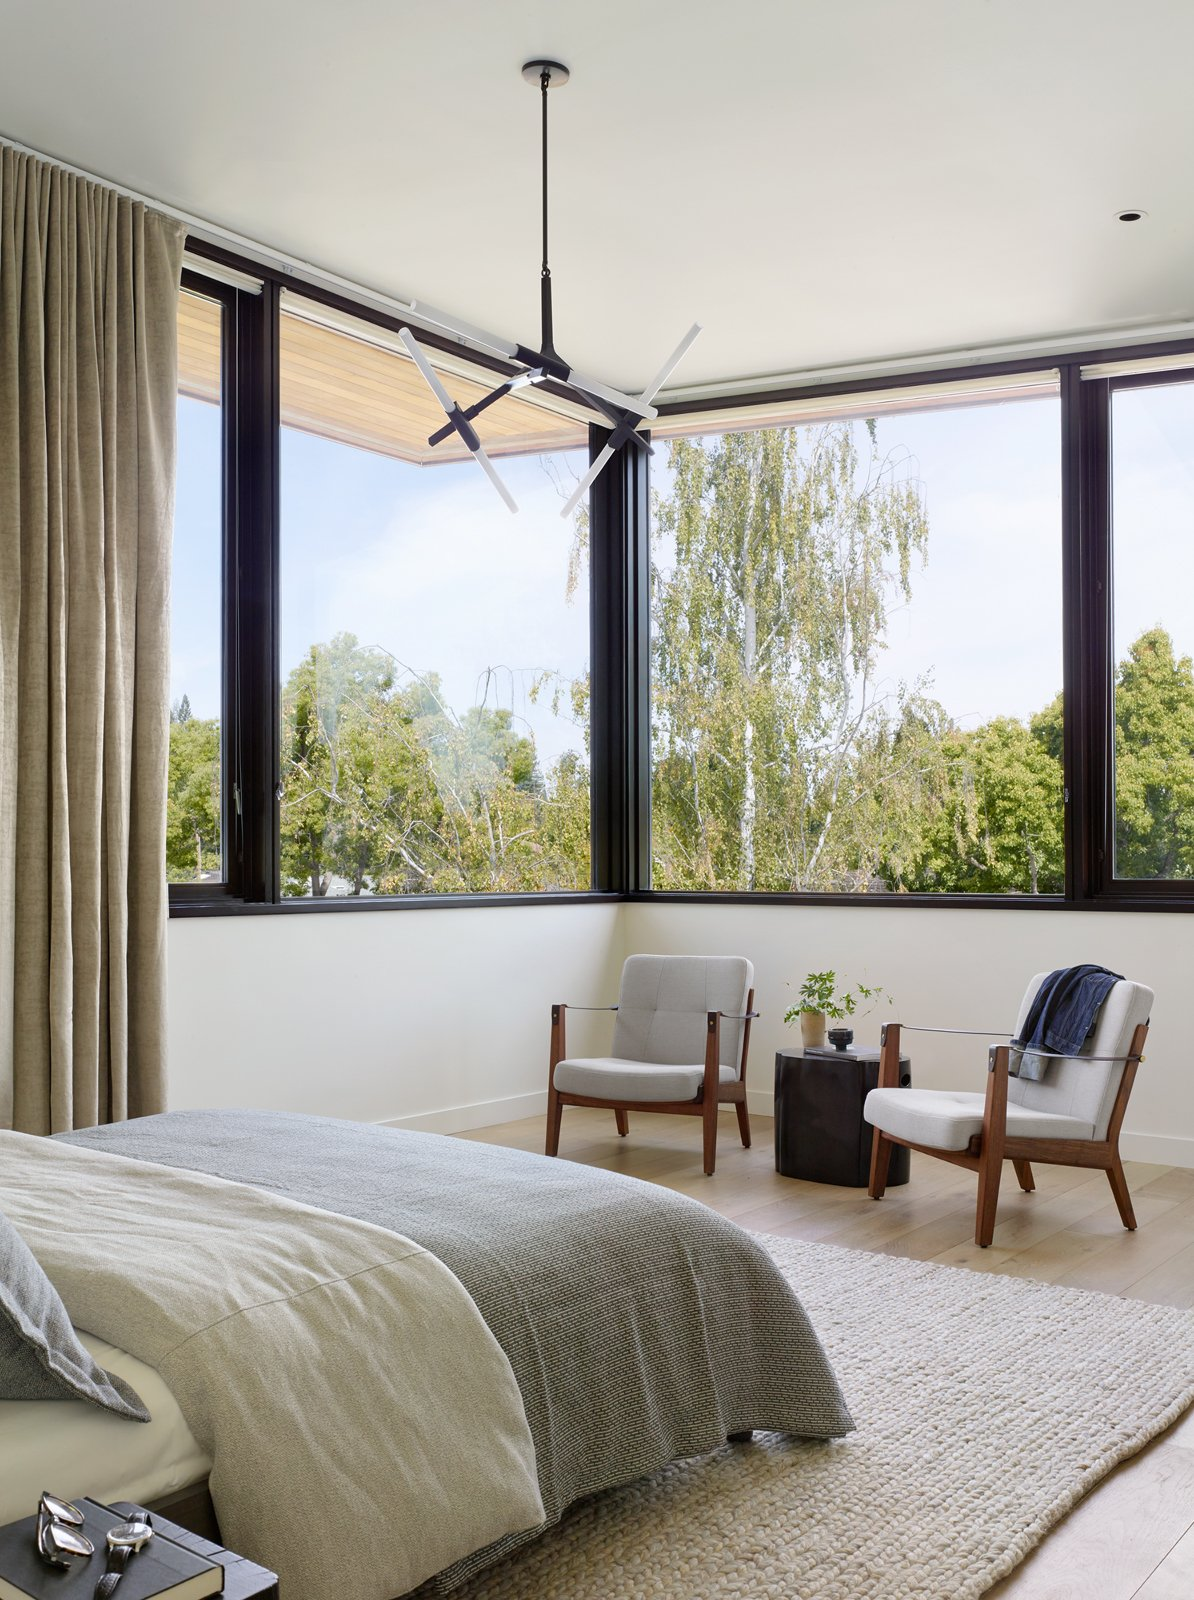 Bedroom, Bed, Rug Floor, Ceiling Lighting, Light Hardwood Floor, and Chair The airy second floor of the home opens up to treetops all around.  Photo 10 of 13 in A Silicon Valley Retreat Sports a Butterfly Roof and Two Indoor/Outdoor Wings